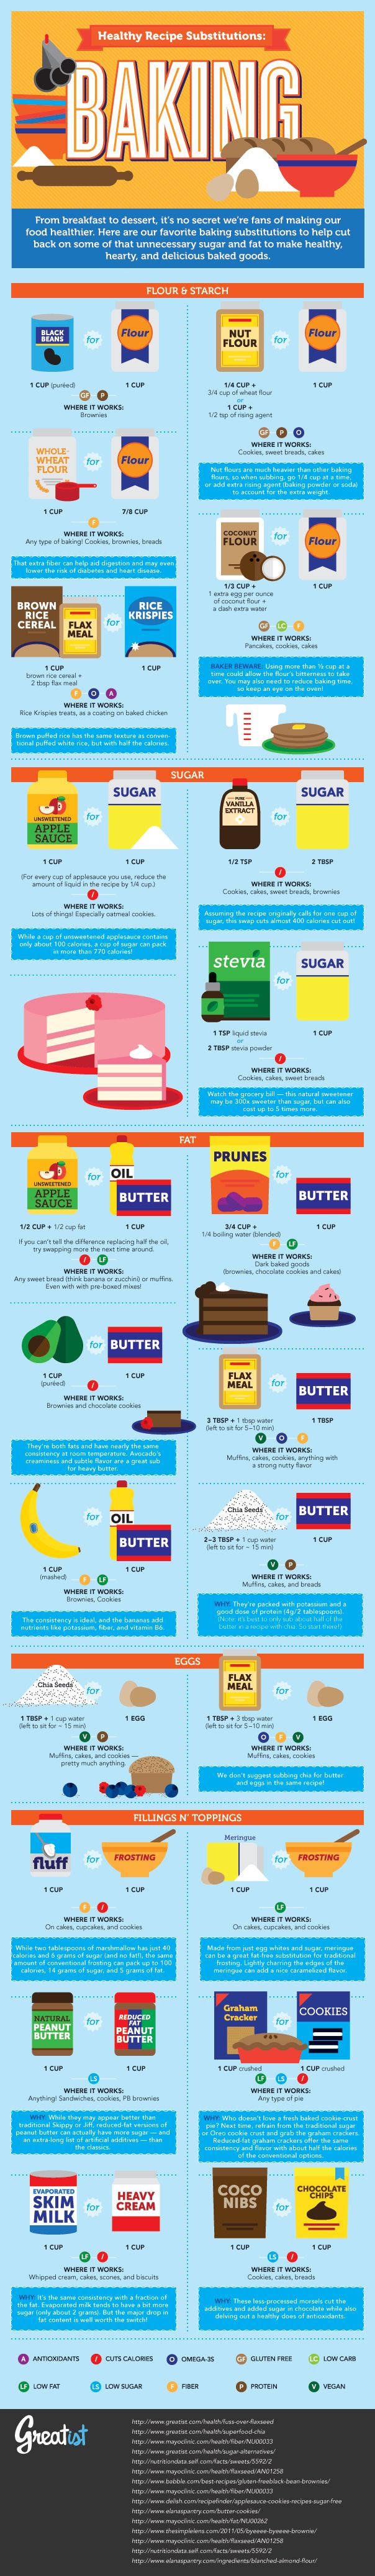 Infographic: Healthy Recipe Substitutions: Baking